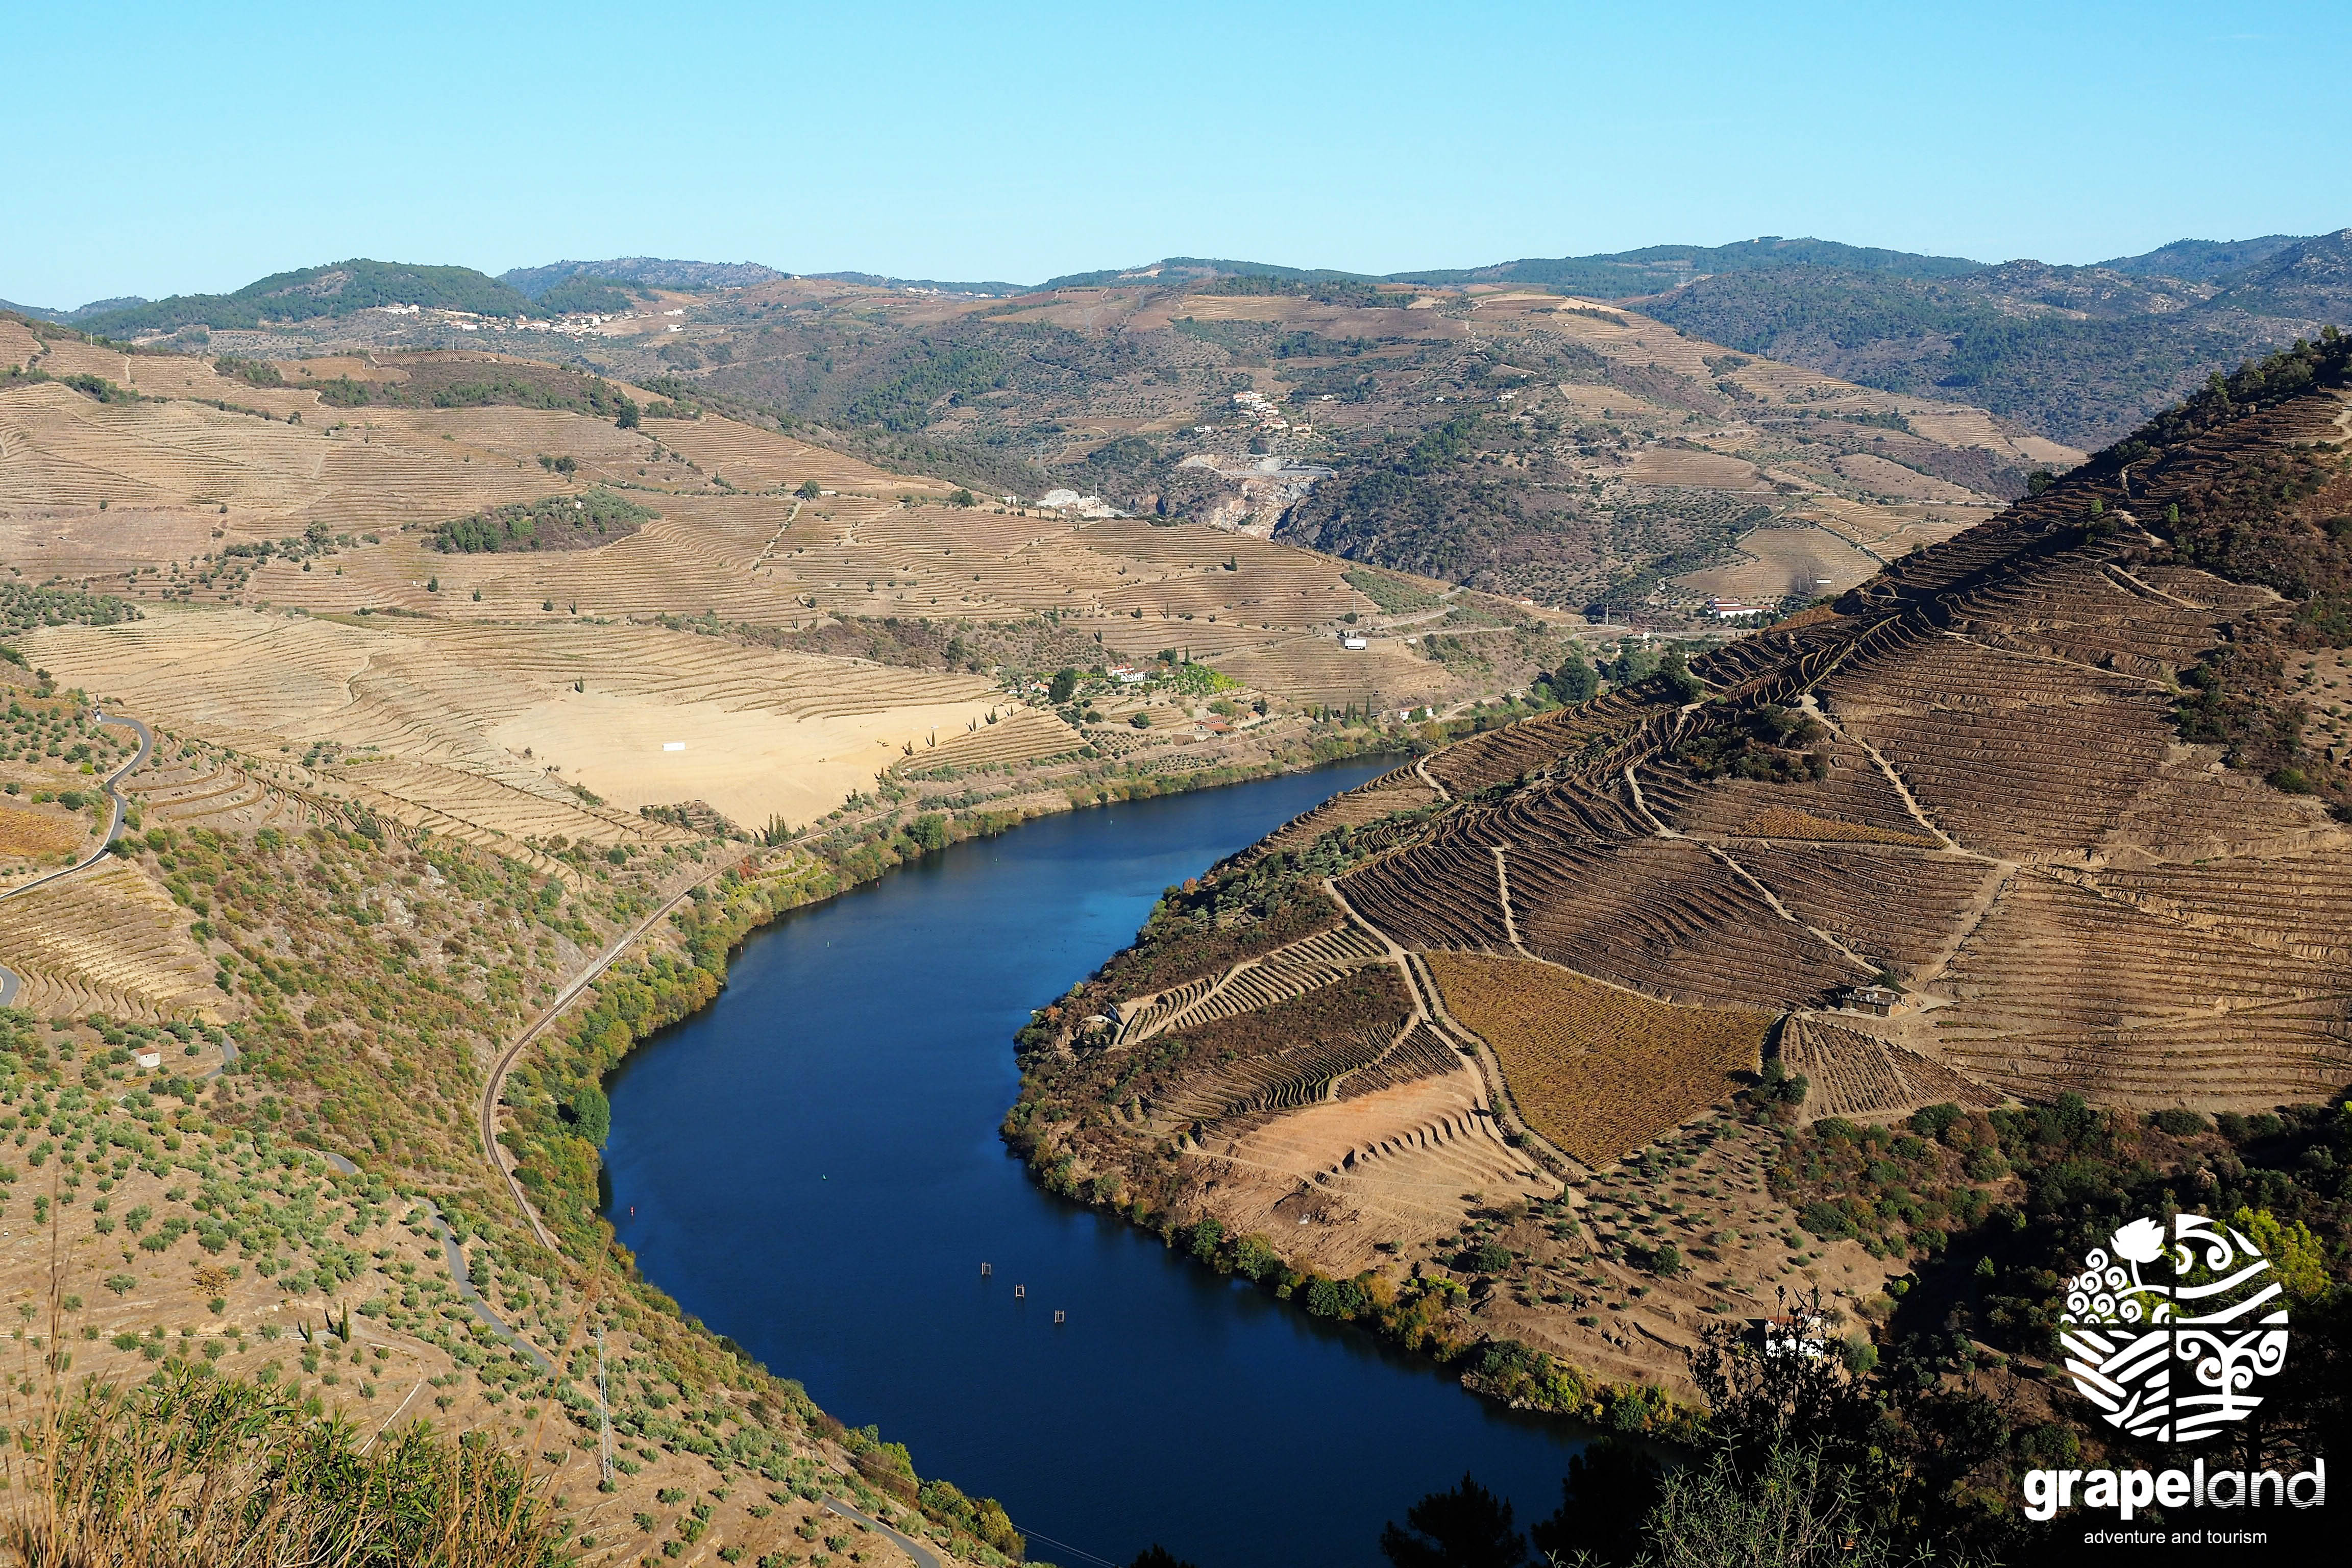 This is Douro Valley